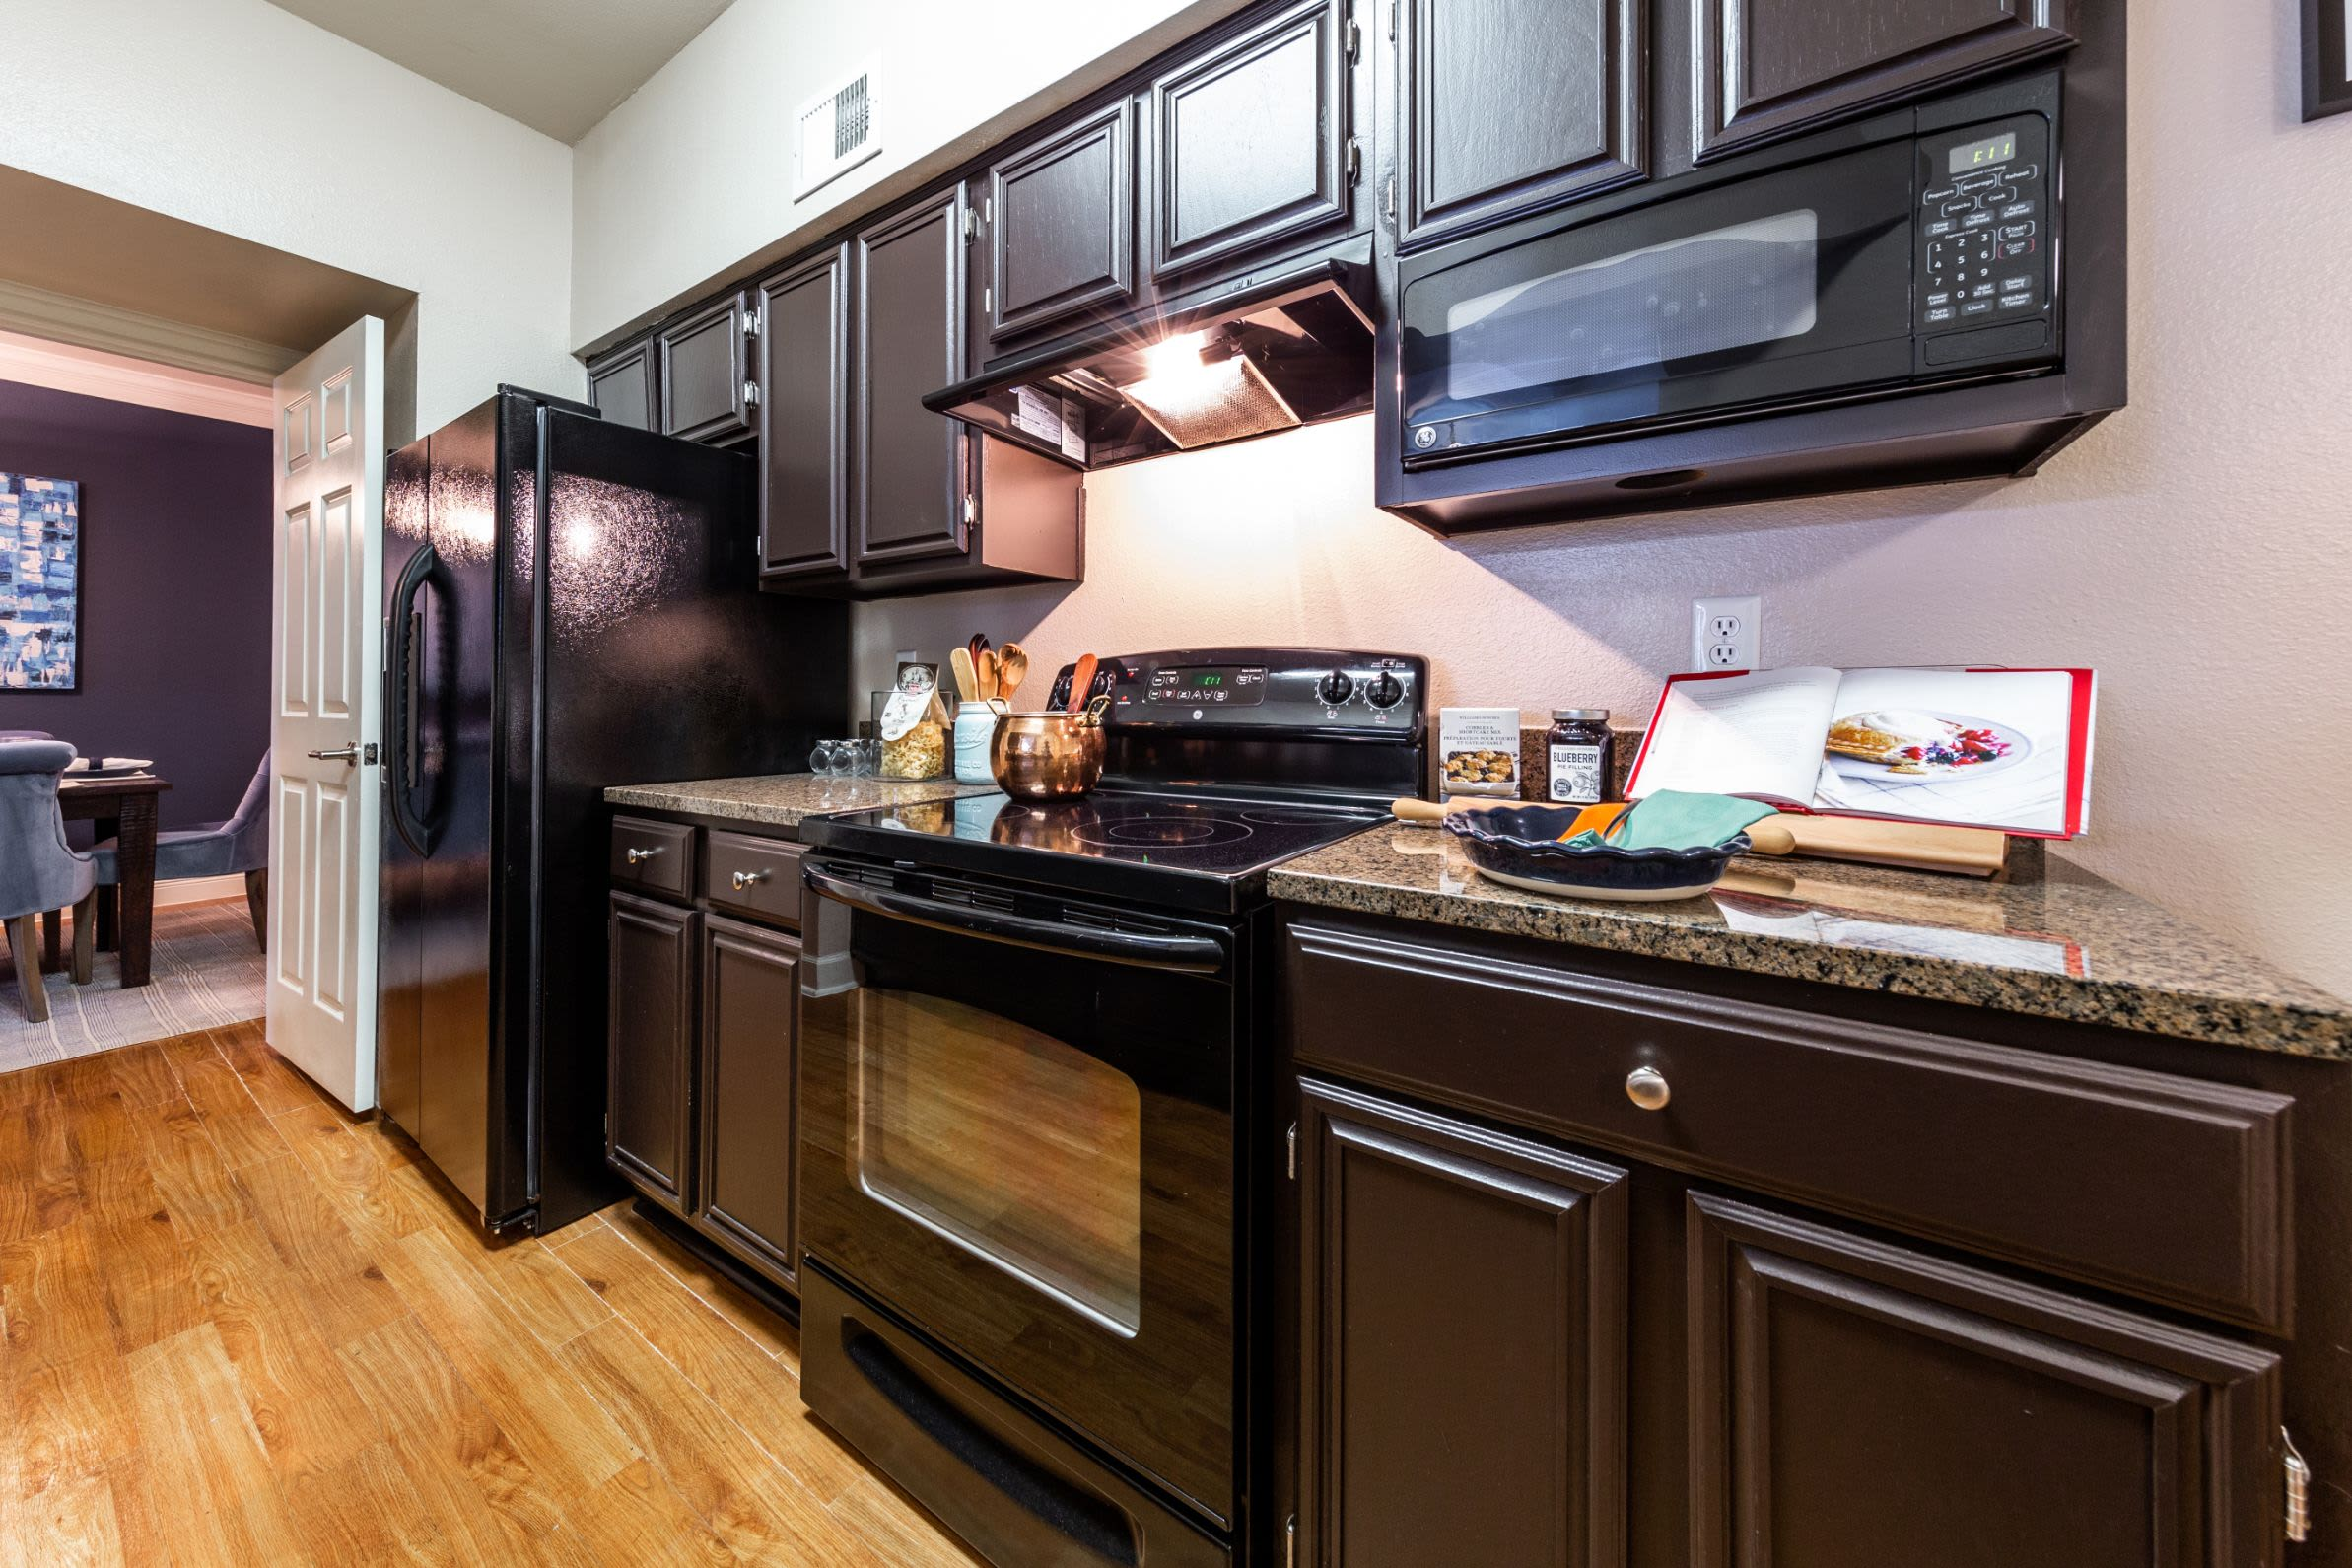 Kitchen with mocha colored cabinets at Marquis on Pin Oak in Houston, Texas